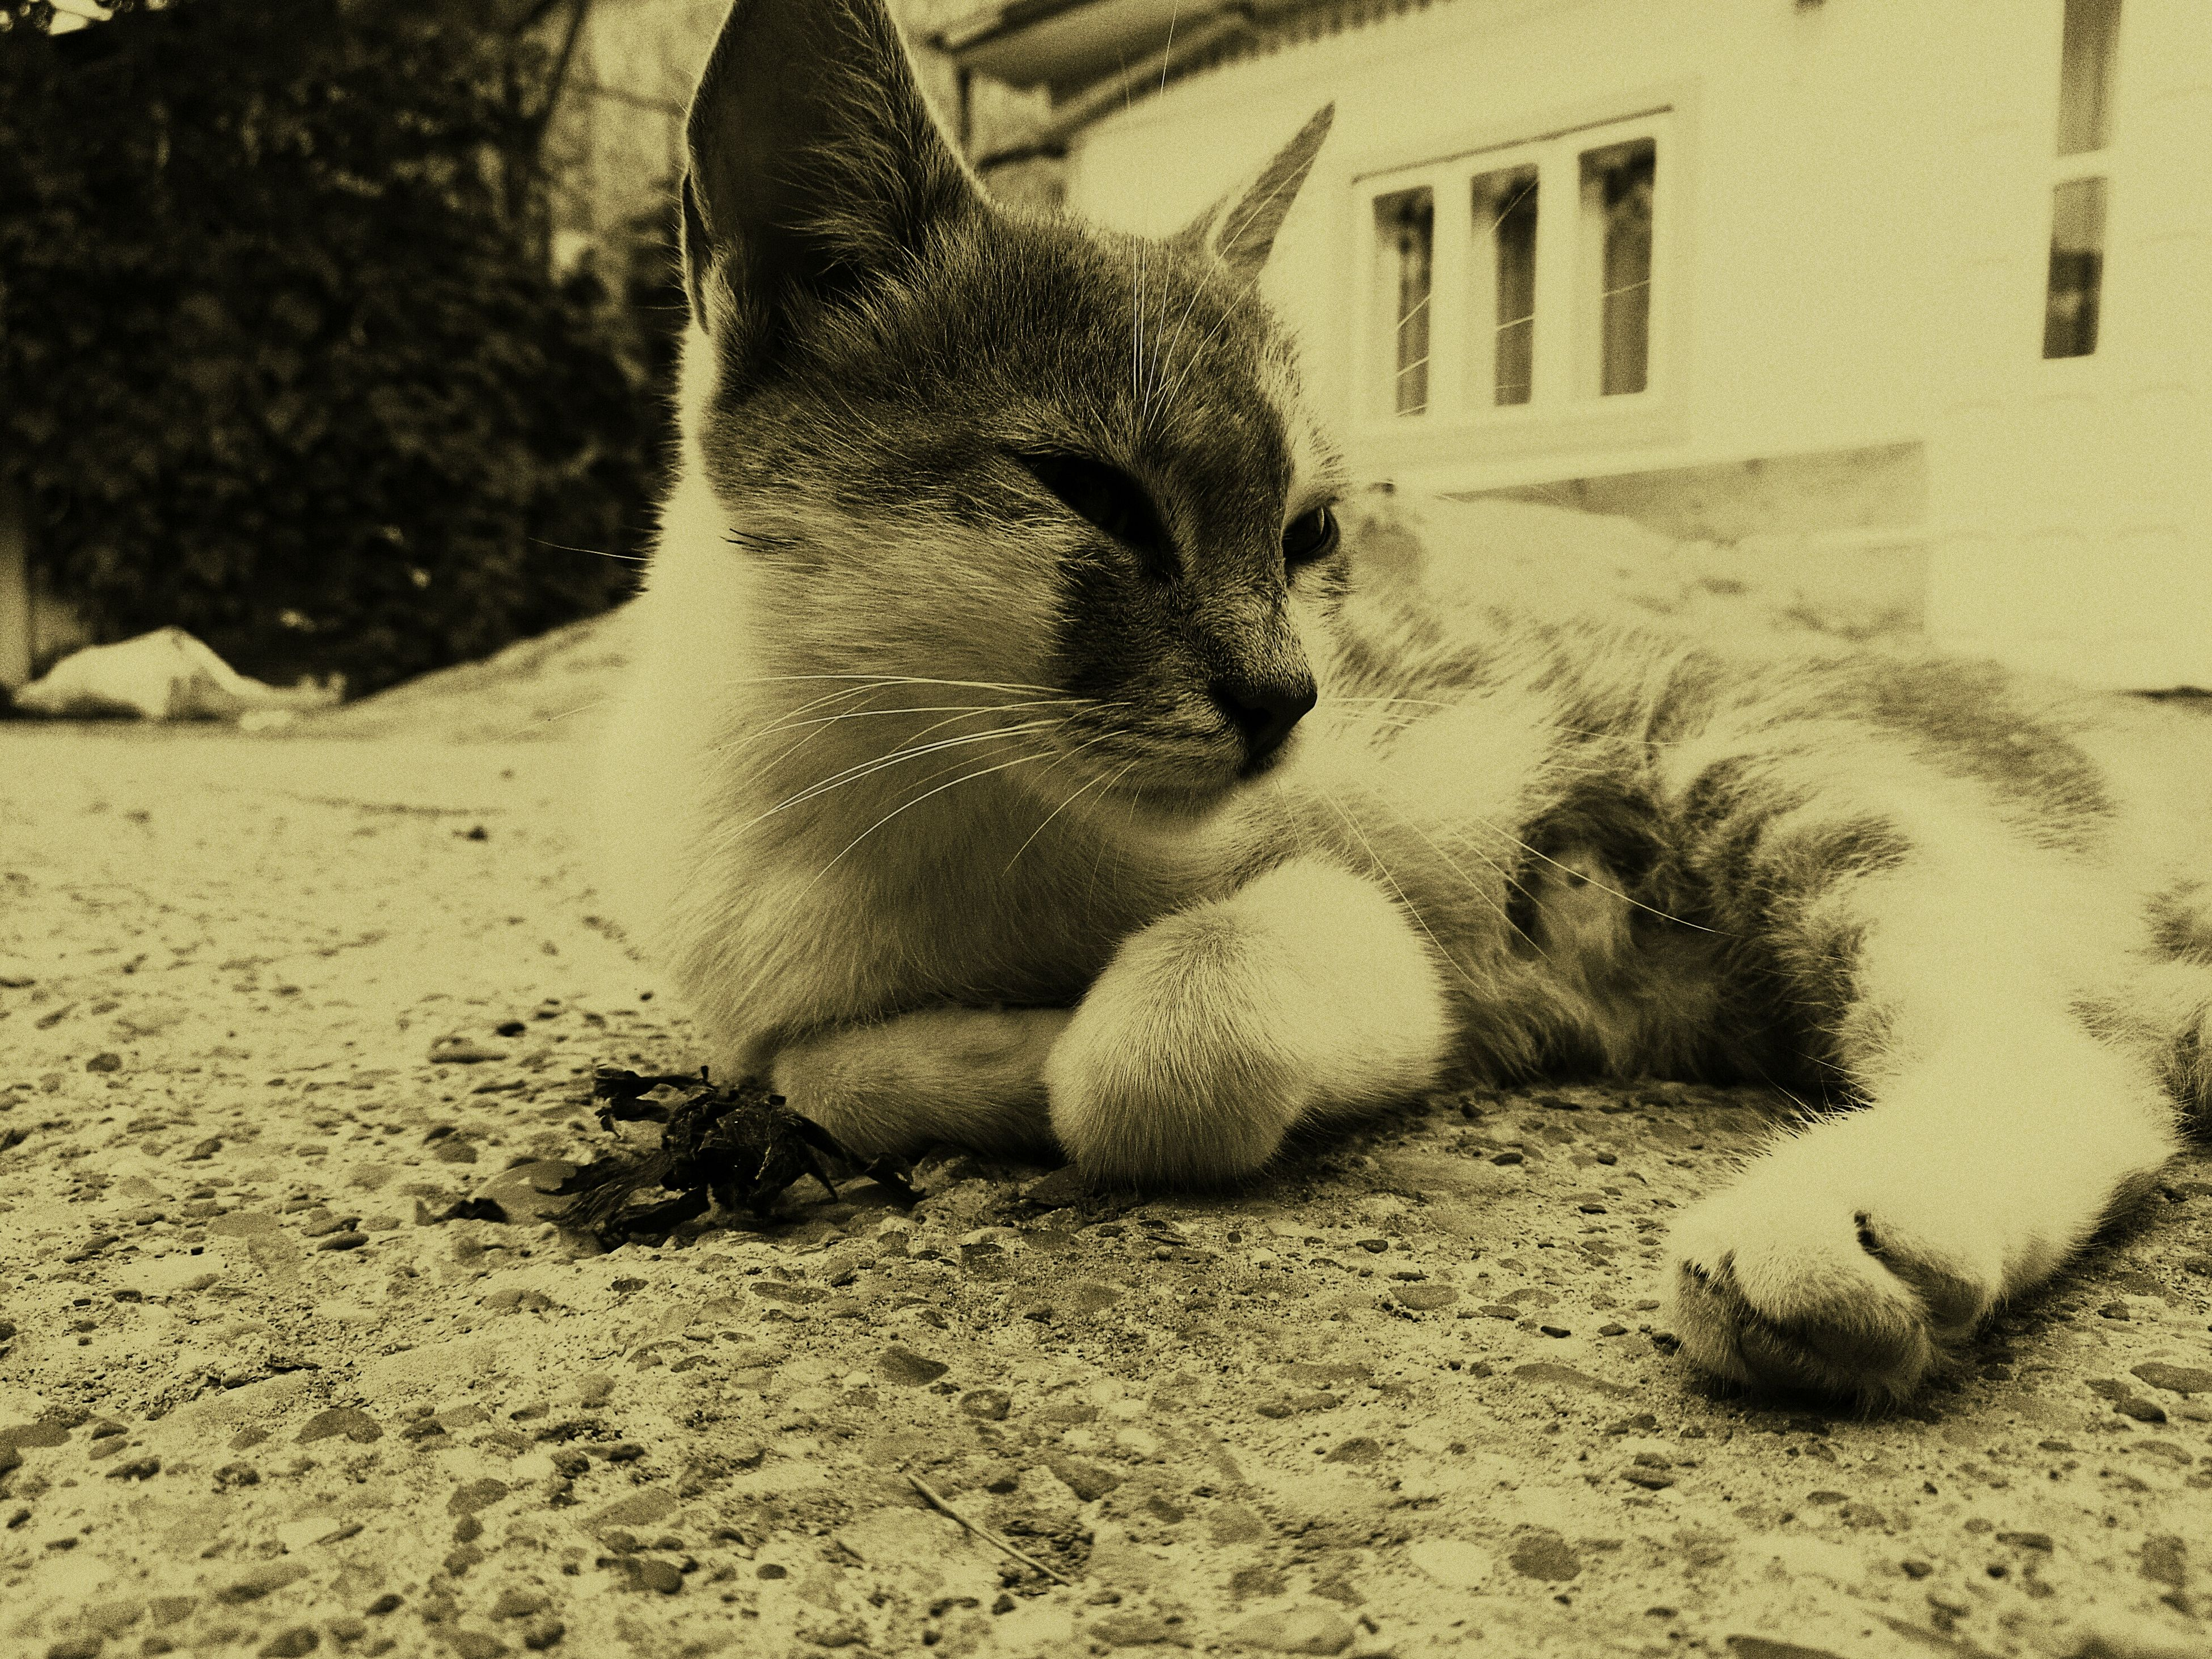 one animal, animal themes, domestic animals, pets, cat, domestic cat, mammal, relaxation, feline, outdoors, day, curiosity, no people, zoology